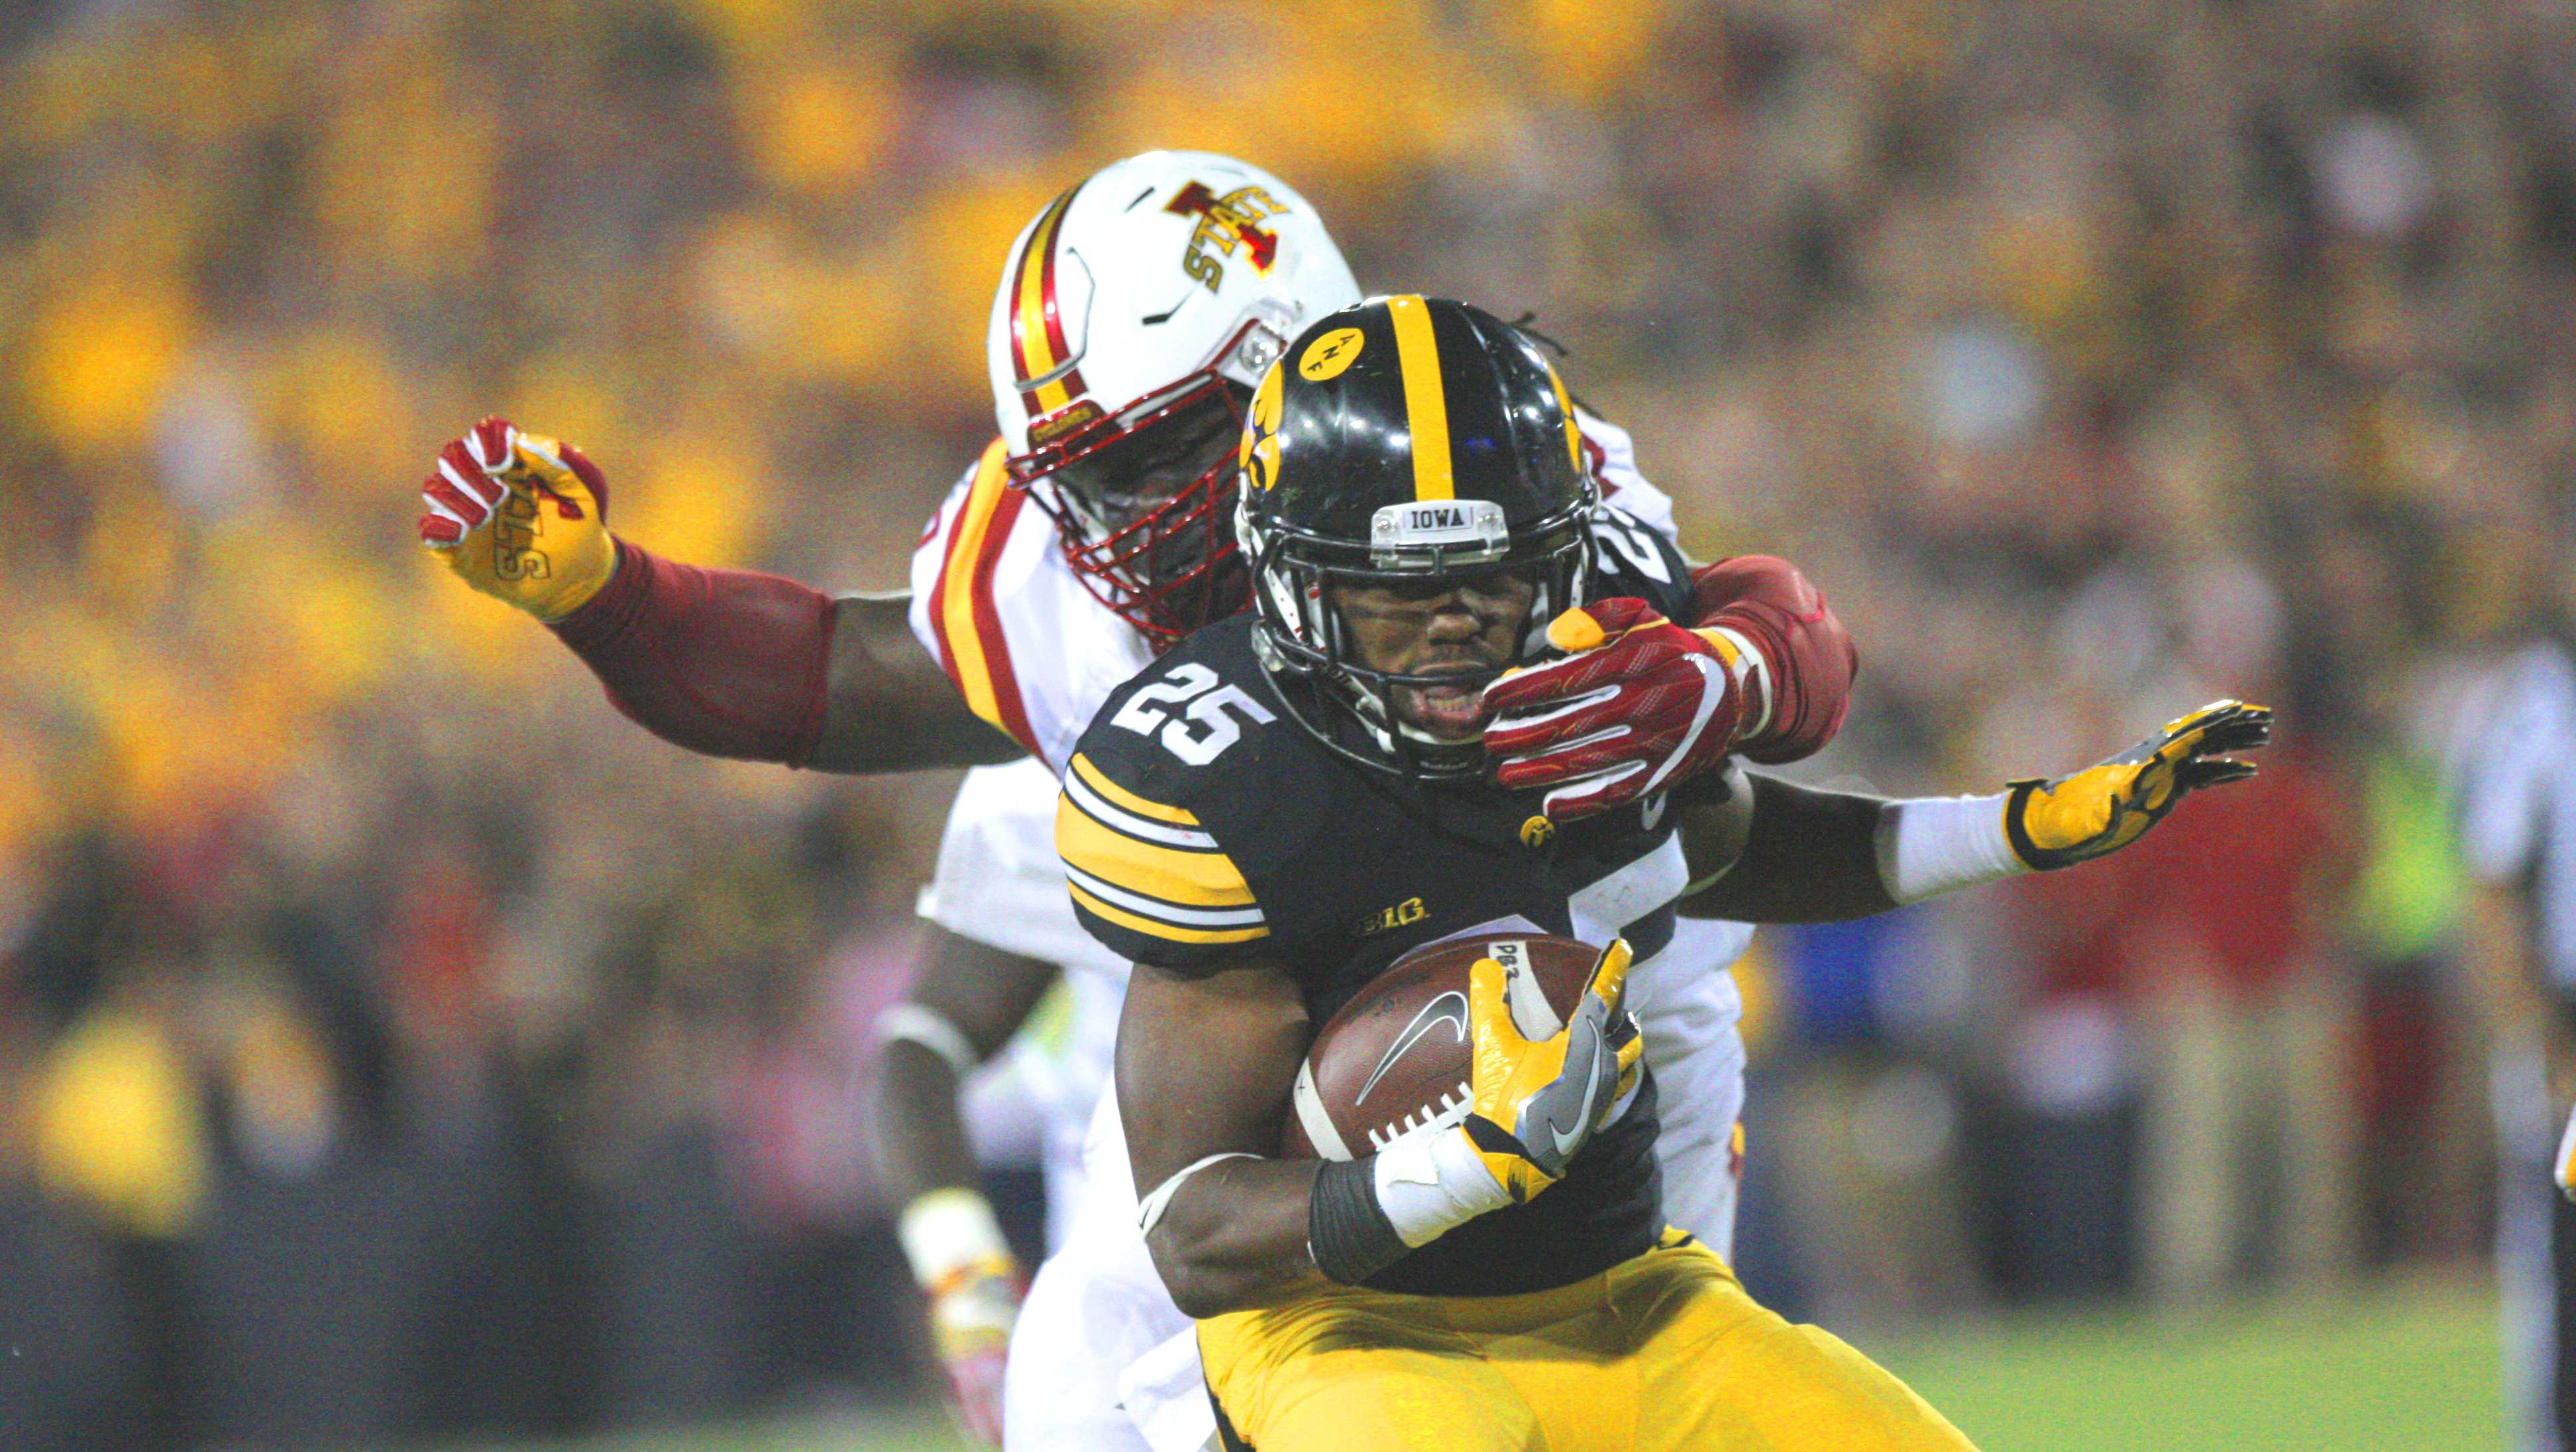 Iowa running back Akrum Wadley gets tackled during the Iowa Corn Cy-Hawk trophy game between Iowa and Iowa State in Kinnick Stadium on Sept. 10, 2016. The Hawkeyes handily defeated the Cyclones, 42-3. (The Daily Iowan/File Photo)